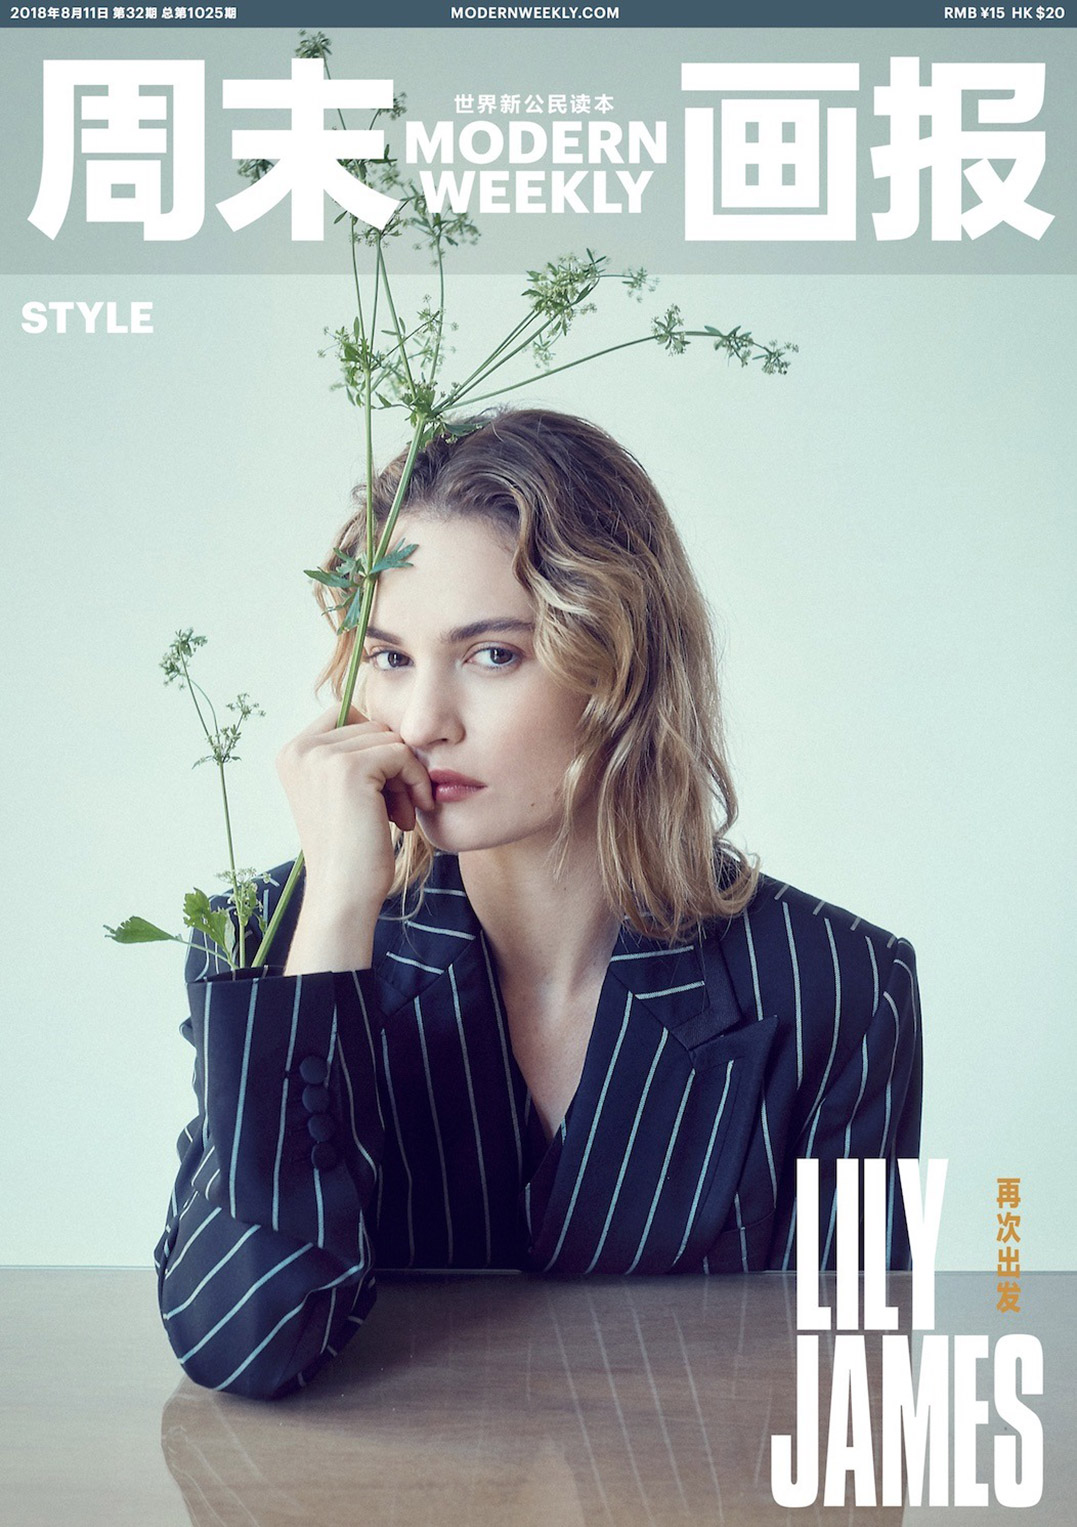 Lily James by Sofia Sanchez and Mauro Mongiello / Modern Weekly China august 2018